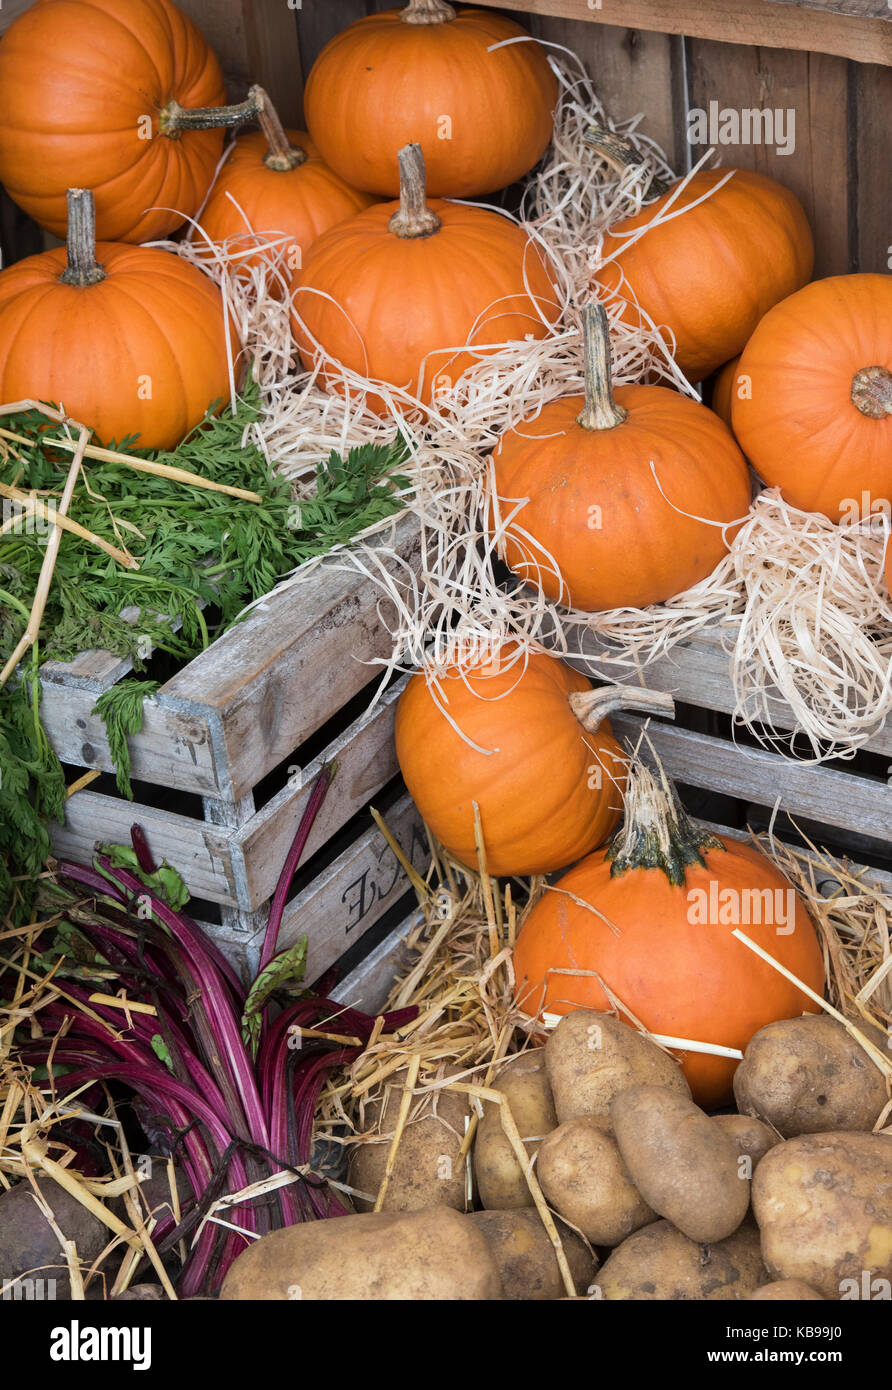 Pumpkin and potato display at Daylesford Organic farm shop autumn festival. Daylesford, Cotswolds, Gloucestershire, Stock Photo